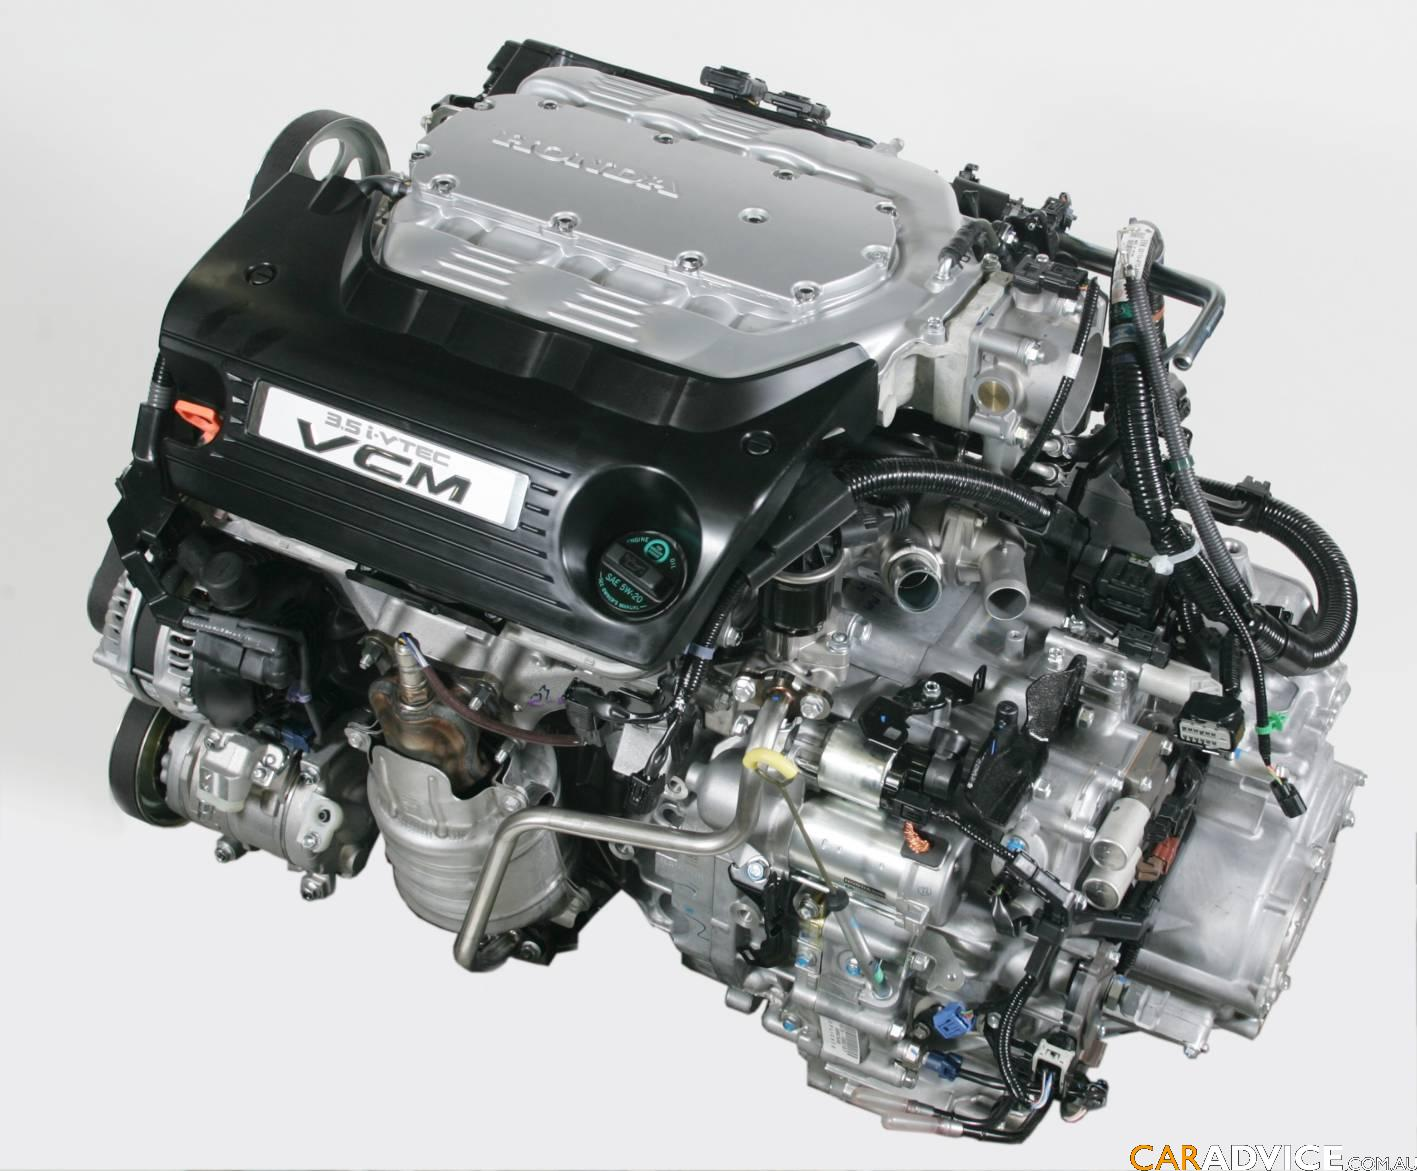 2008 Honda Accord V6 engine details | CarAdvice